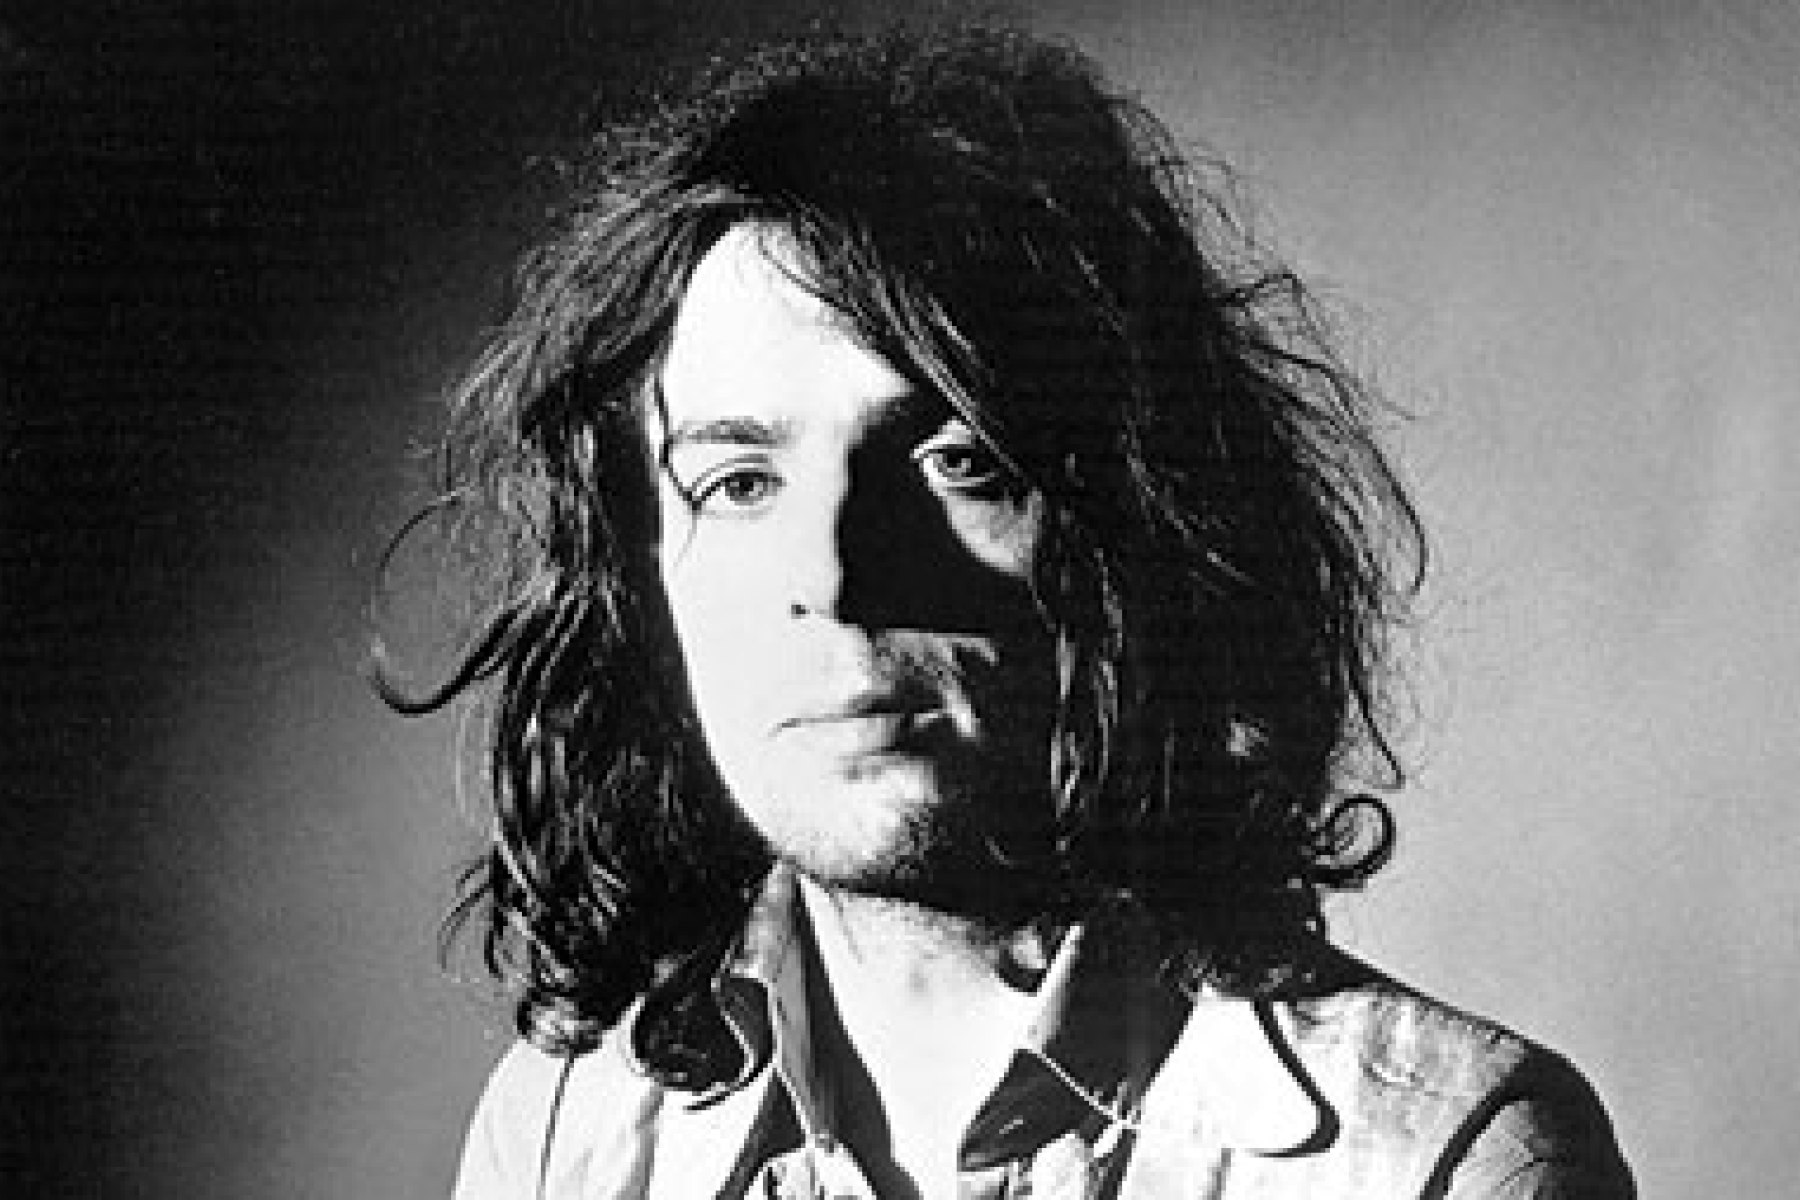 syd barret pink floyd drogue separation groupe